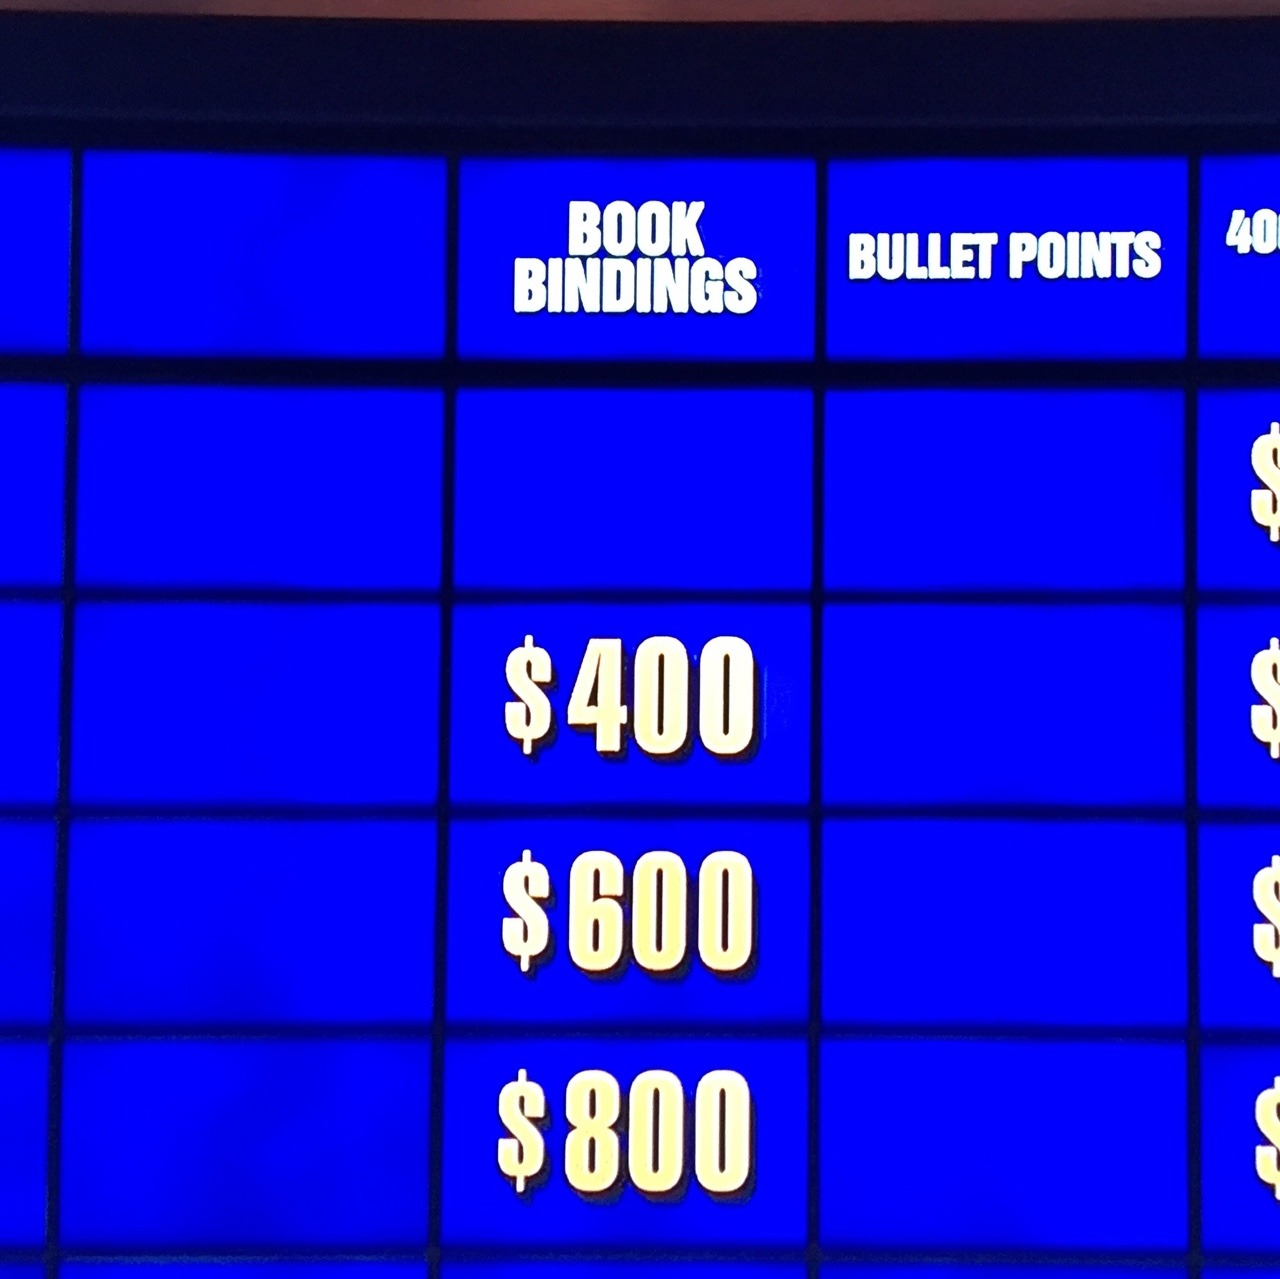 Book Bindings on Jeopardy